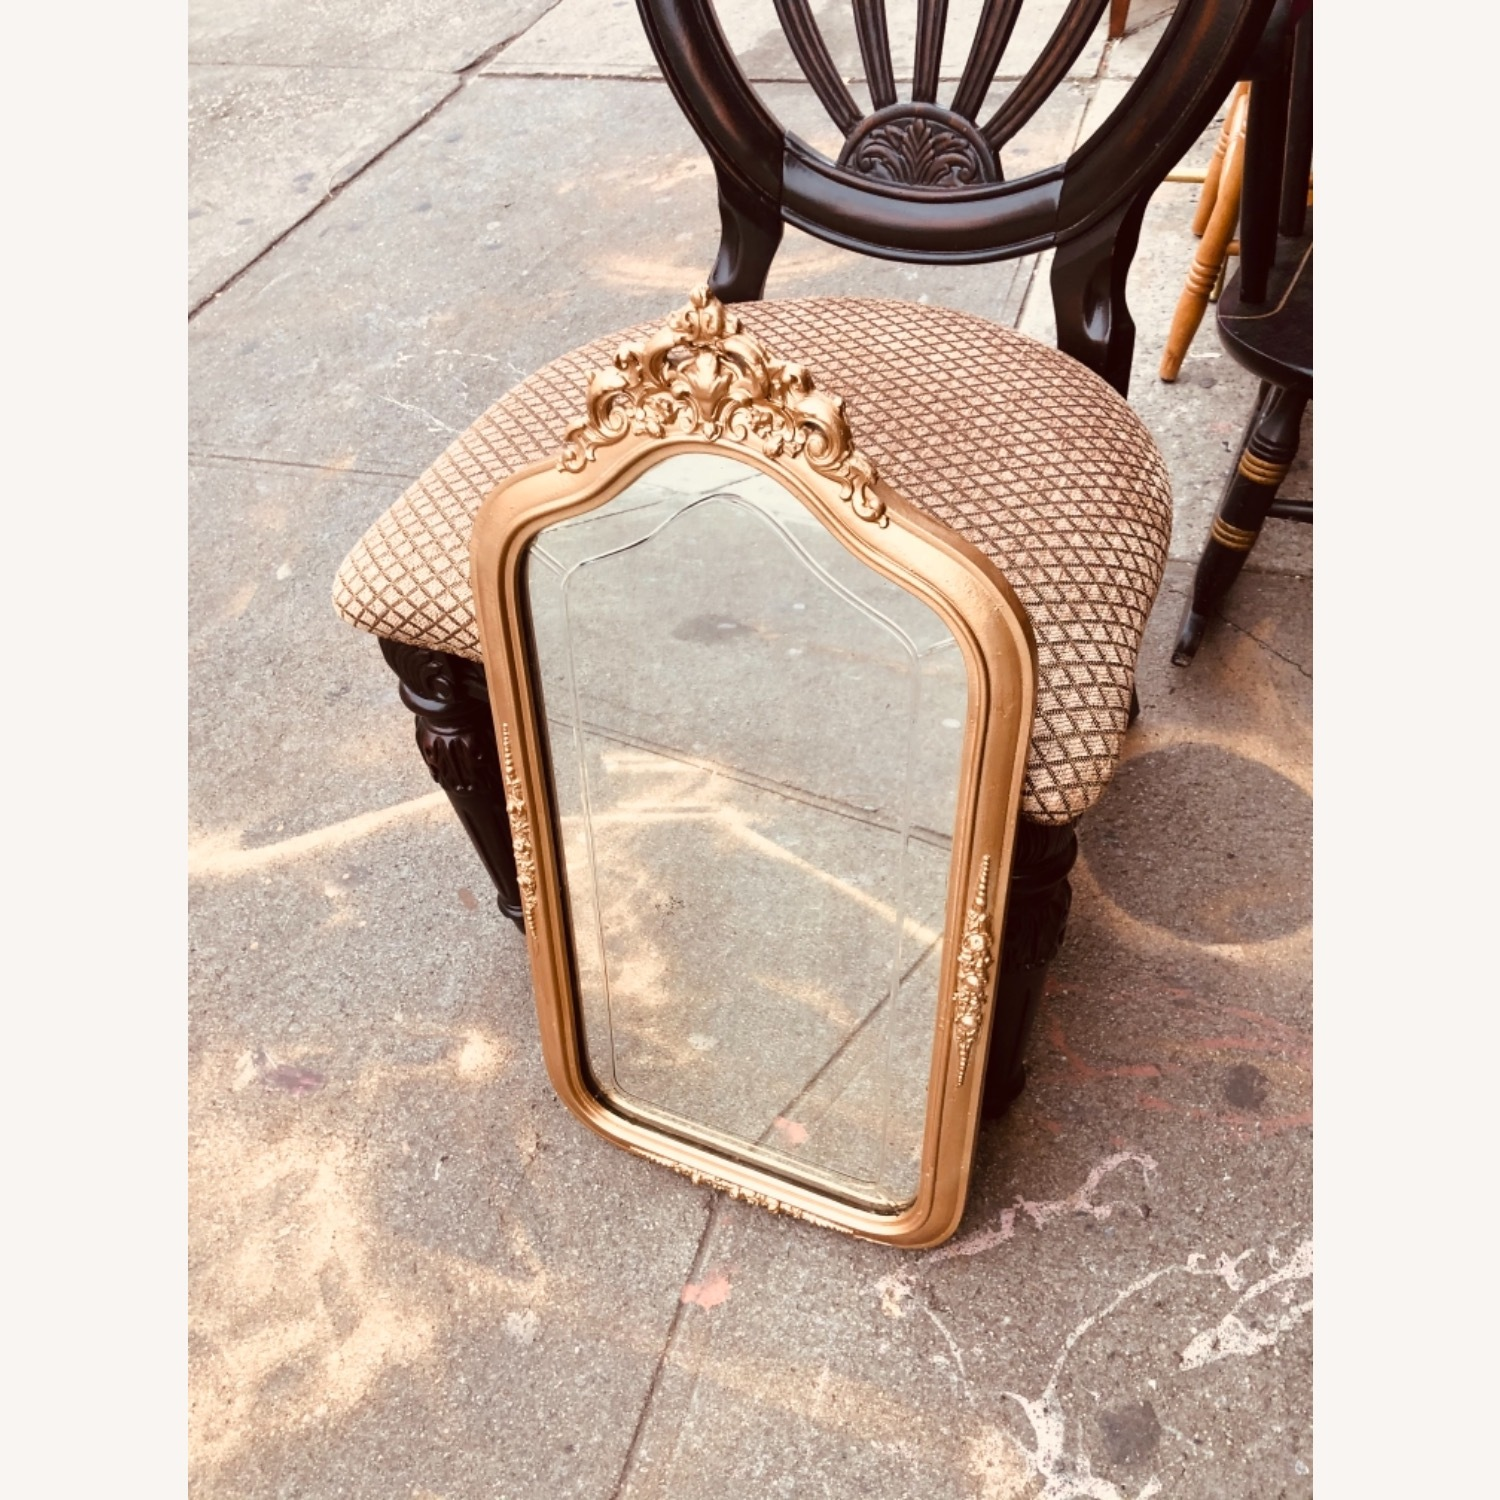 Antique 1920s Gold Painted Engraved Wall Mirror - image-7